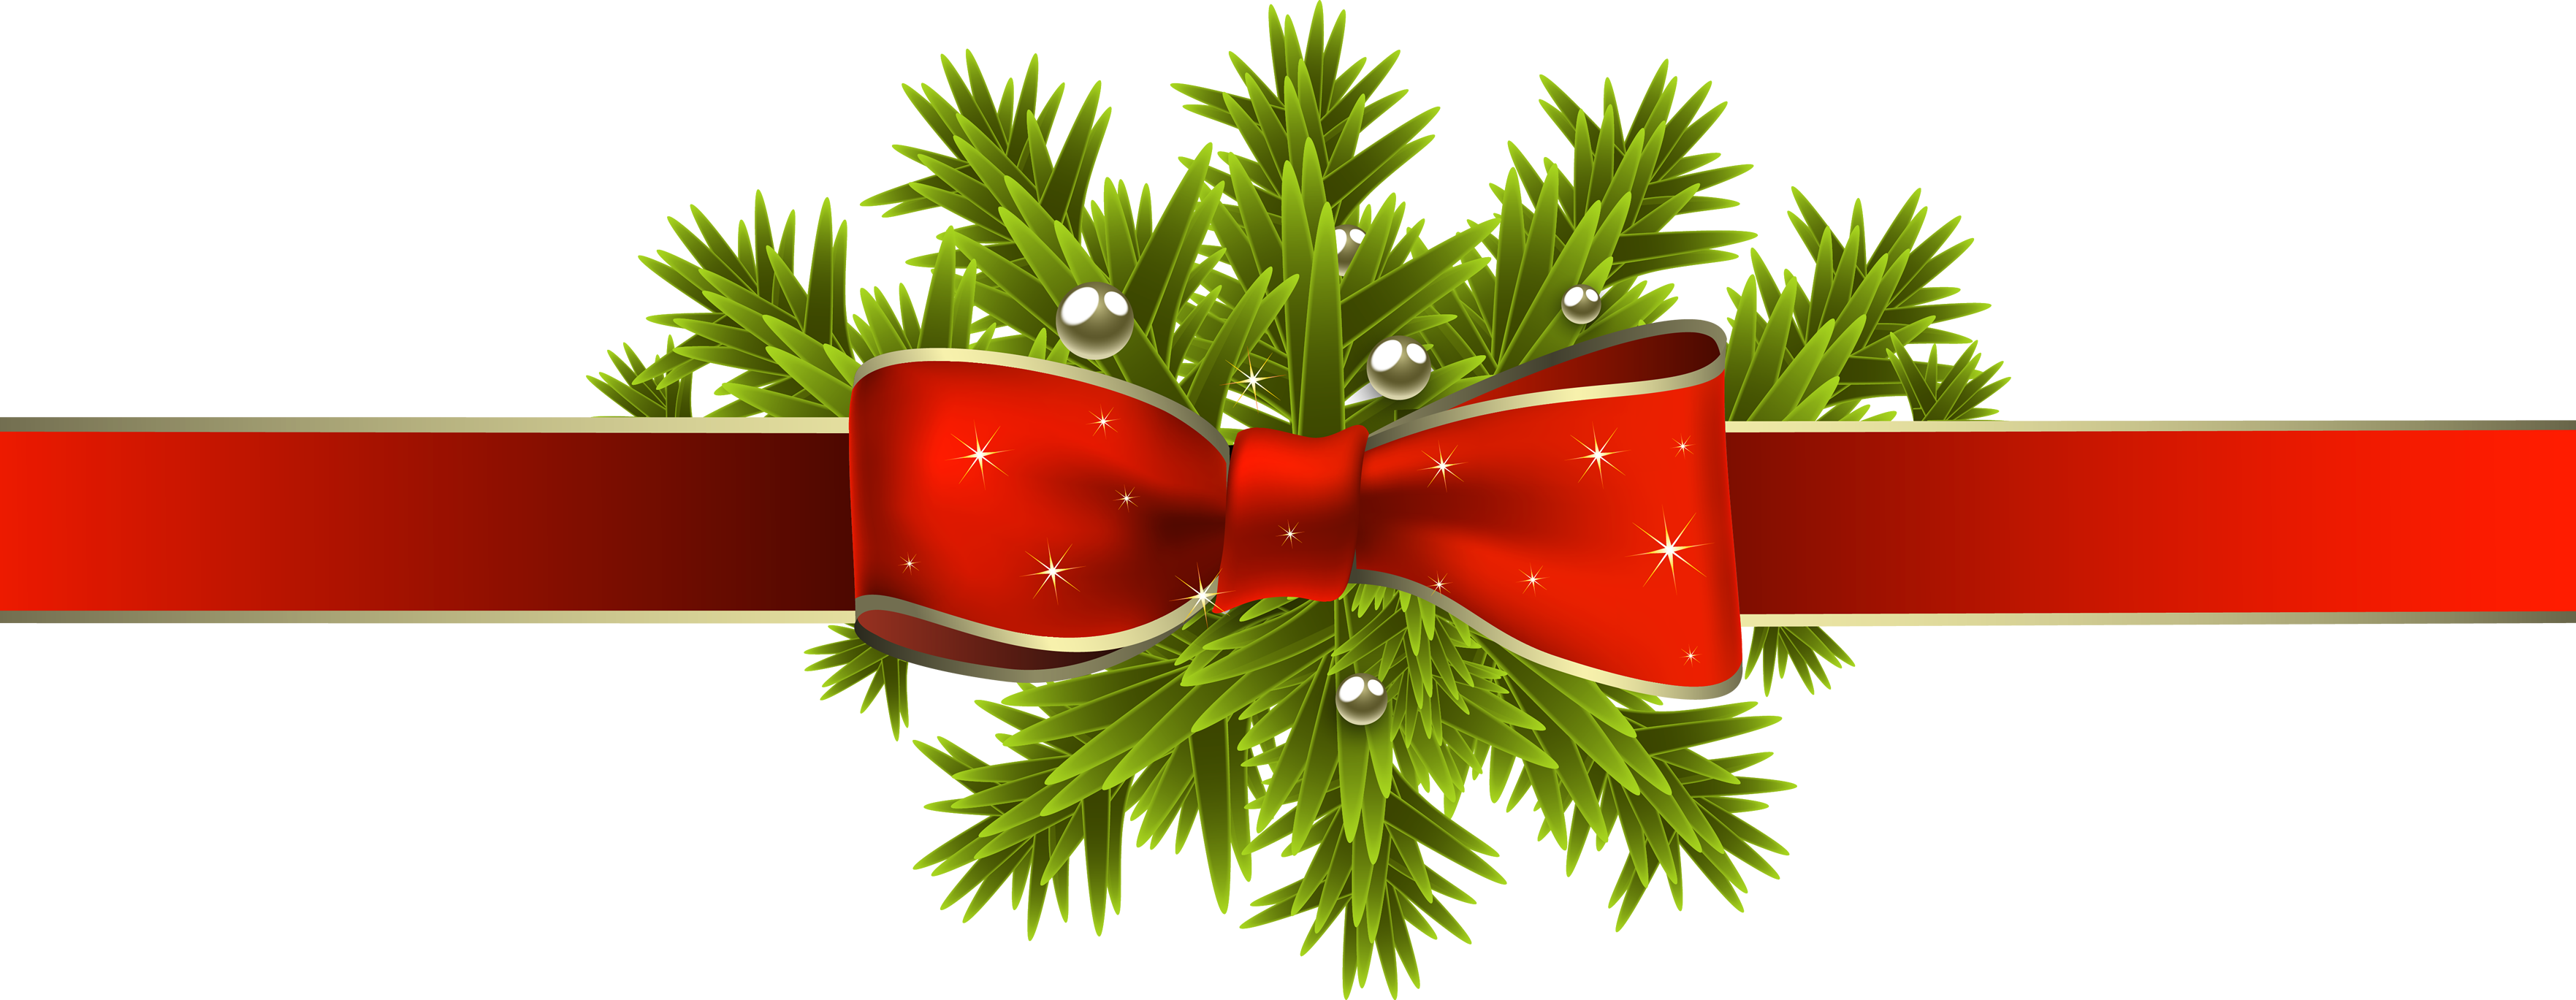 Christian clipart christmas picture transparent download Christmas PNG images download picture transparent download